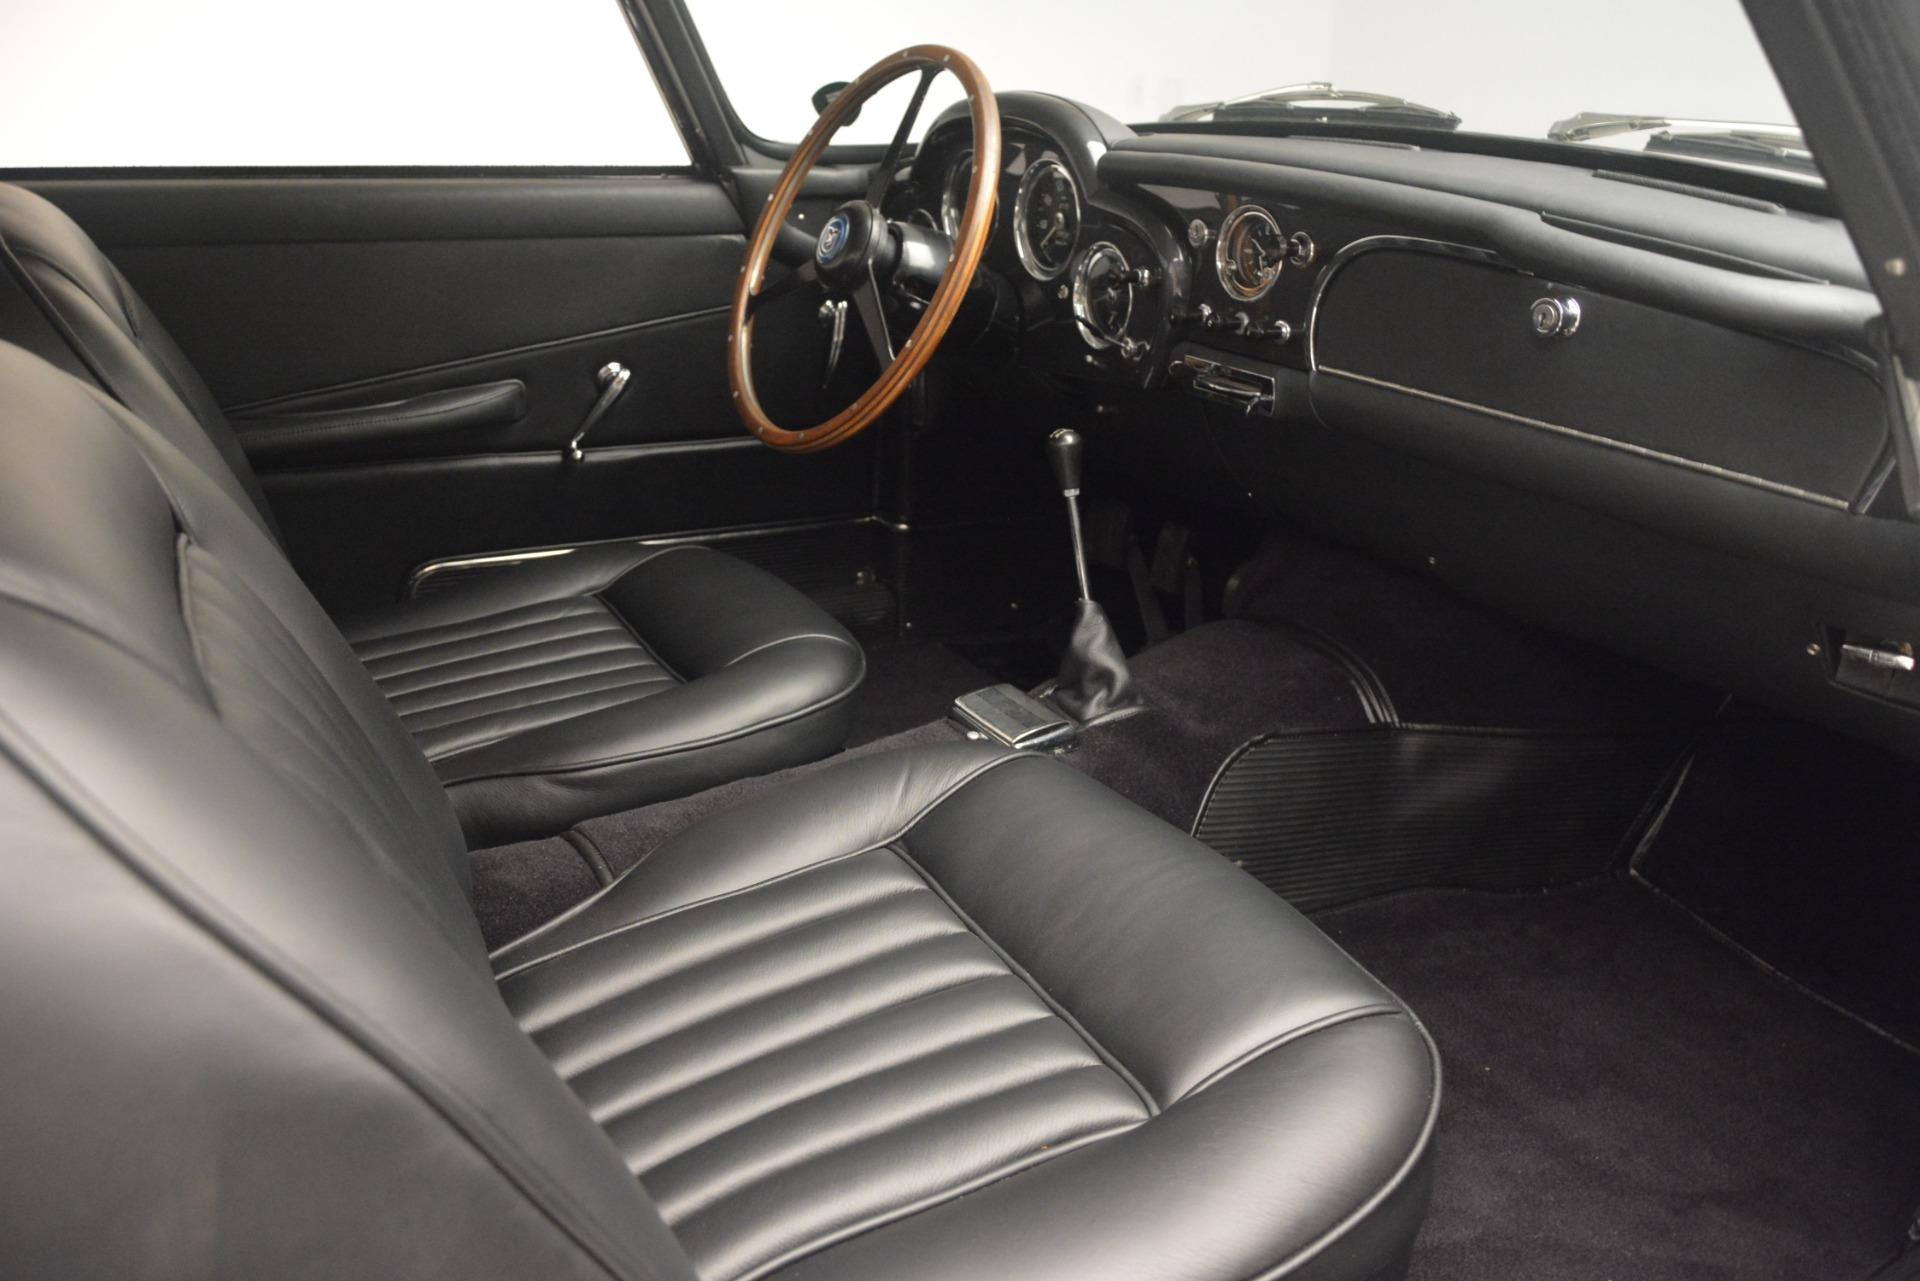 Used 1961 Aston Martin DB4 Series IV Coupe For Sale In Westport, CT 3186_p25